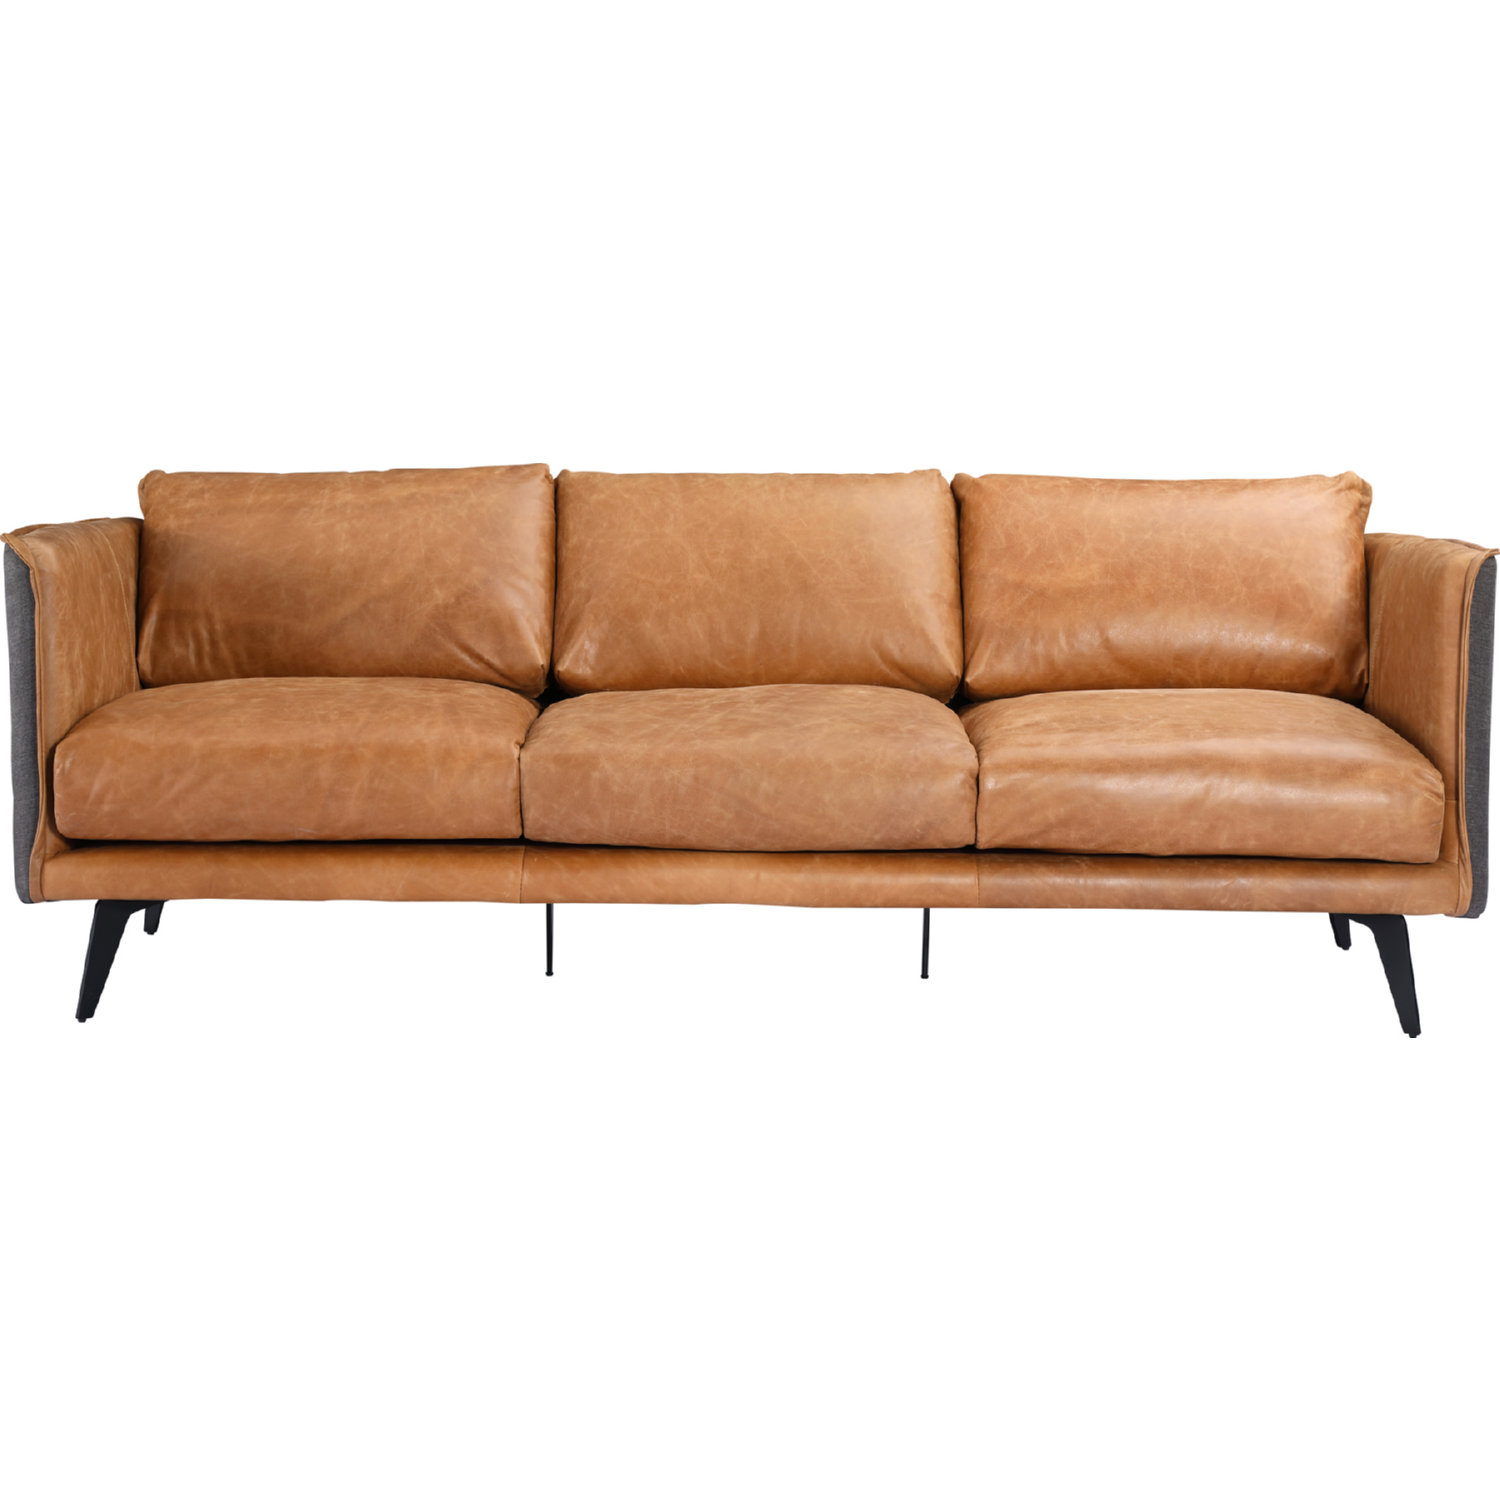 Messina Sofa in Cognac Leather w/ Fabric Back & Sides by Moe\'s Home  Collection